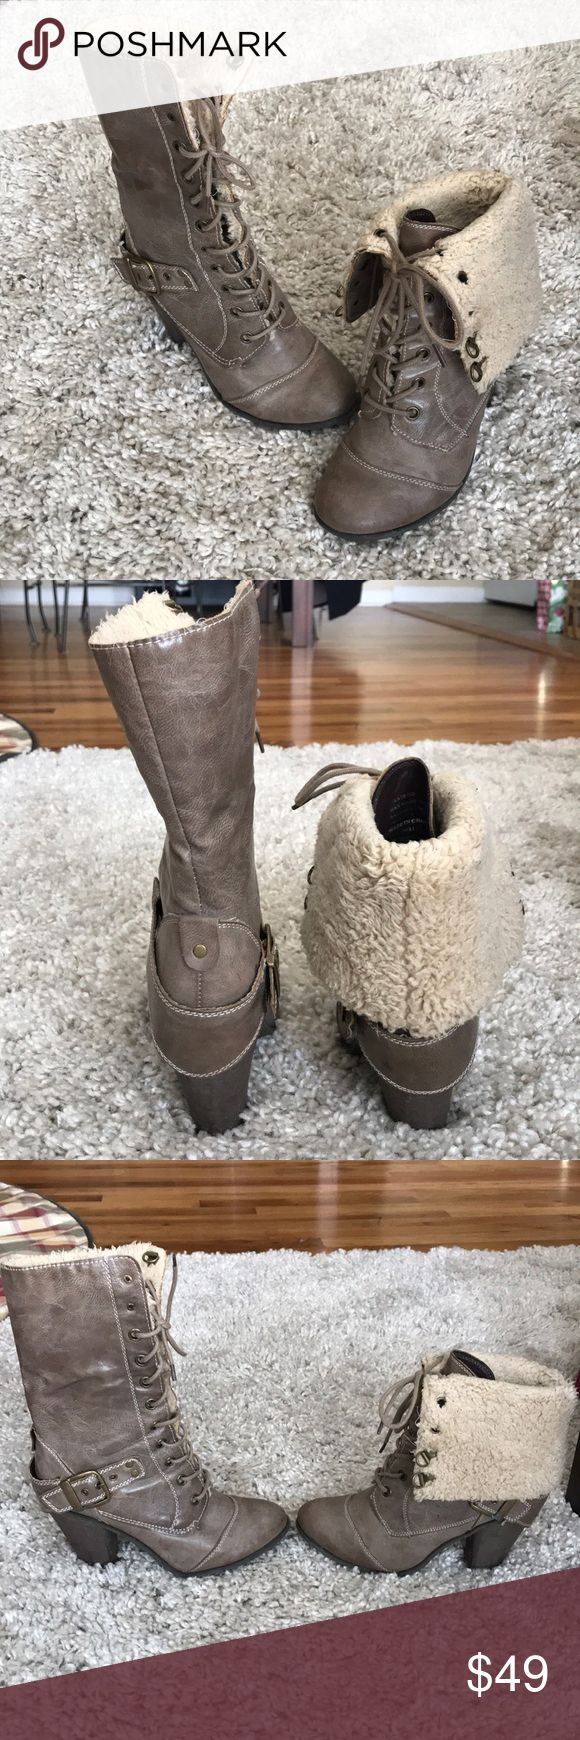 Nine West fur boots! Size 7. Faux fur throughout the inside so they are warm! 4 inch heel. In excellent condition! Nine West Shoes